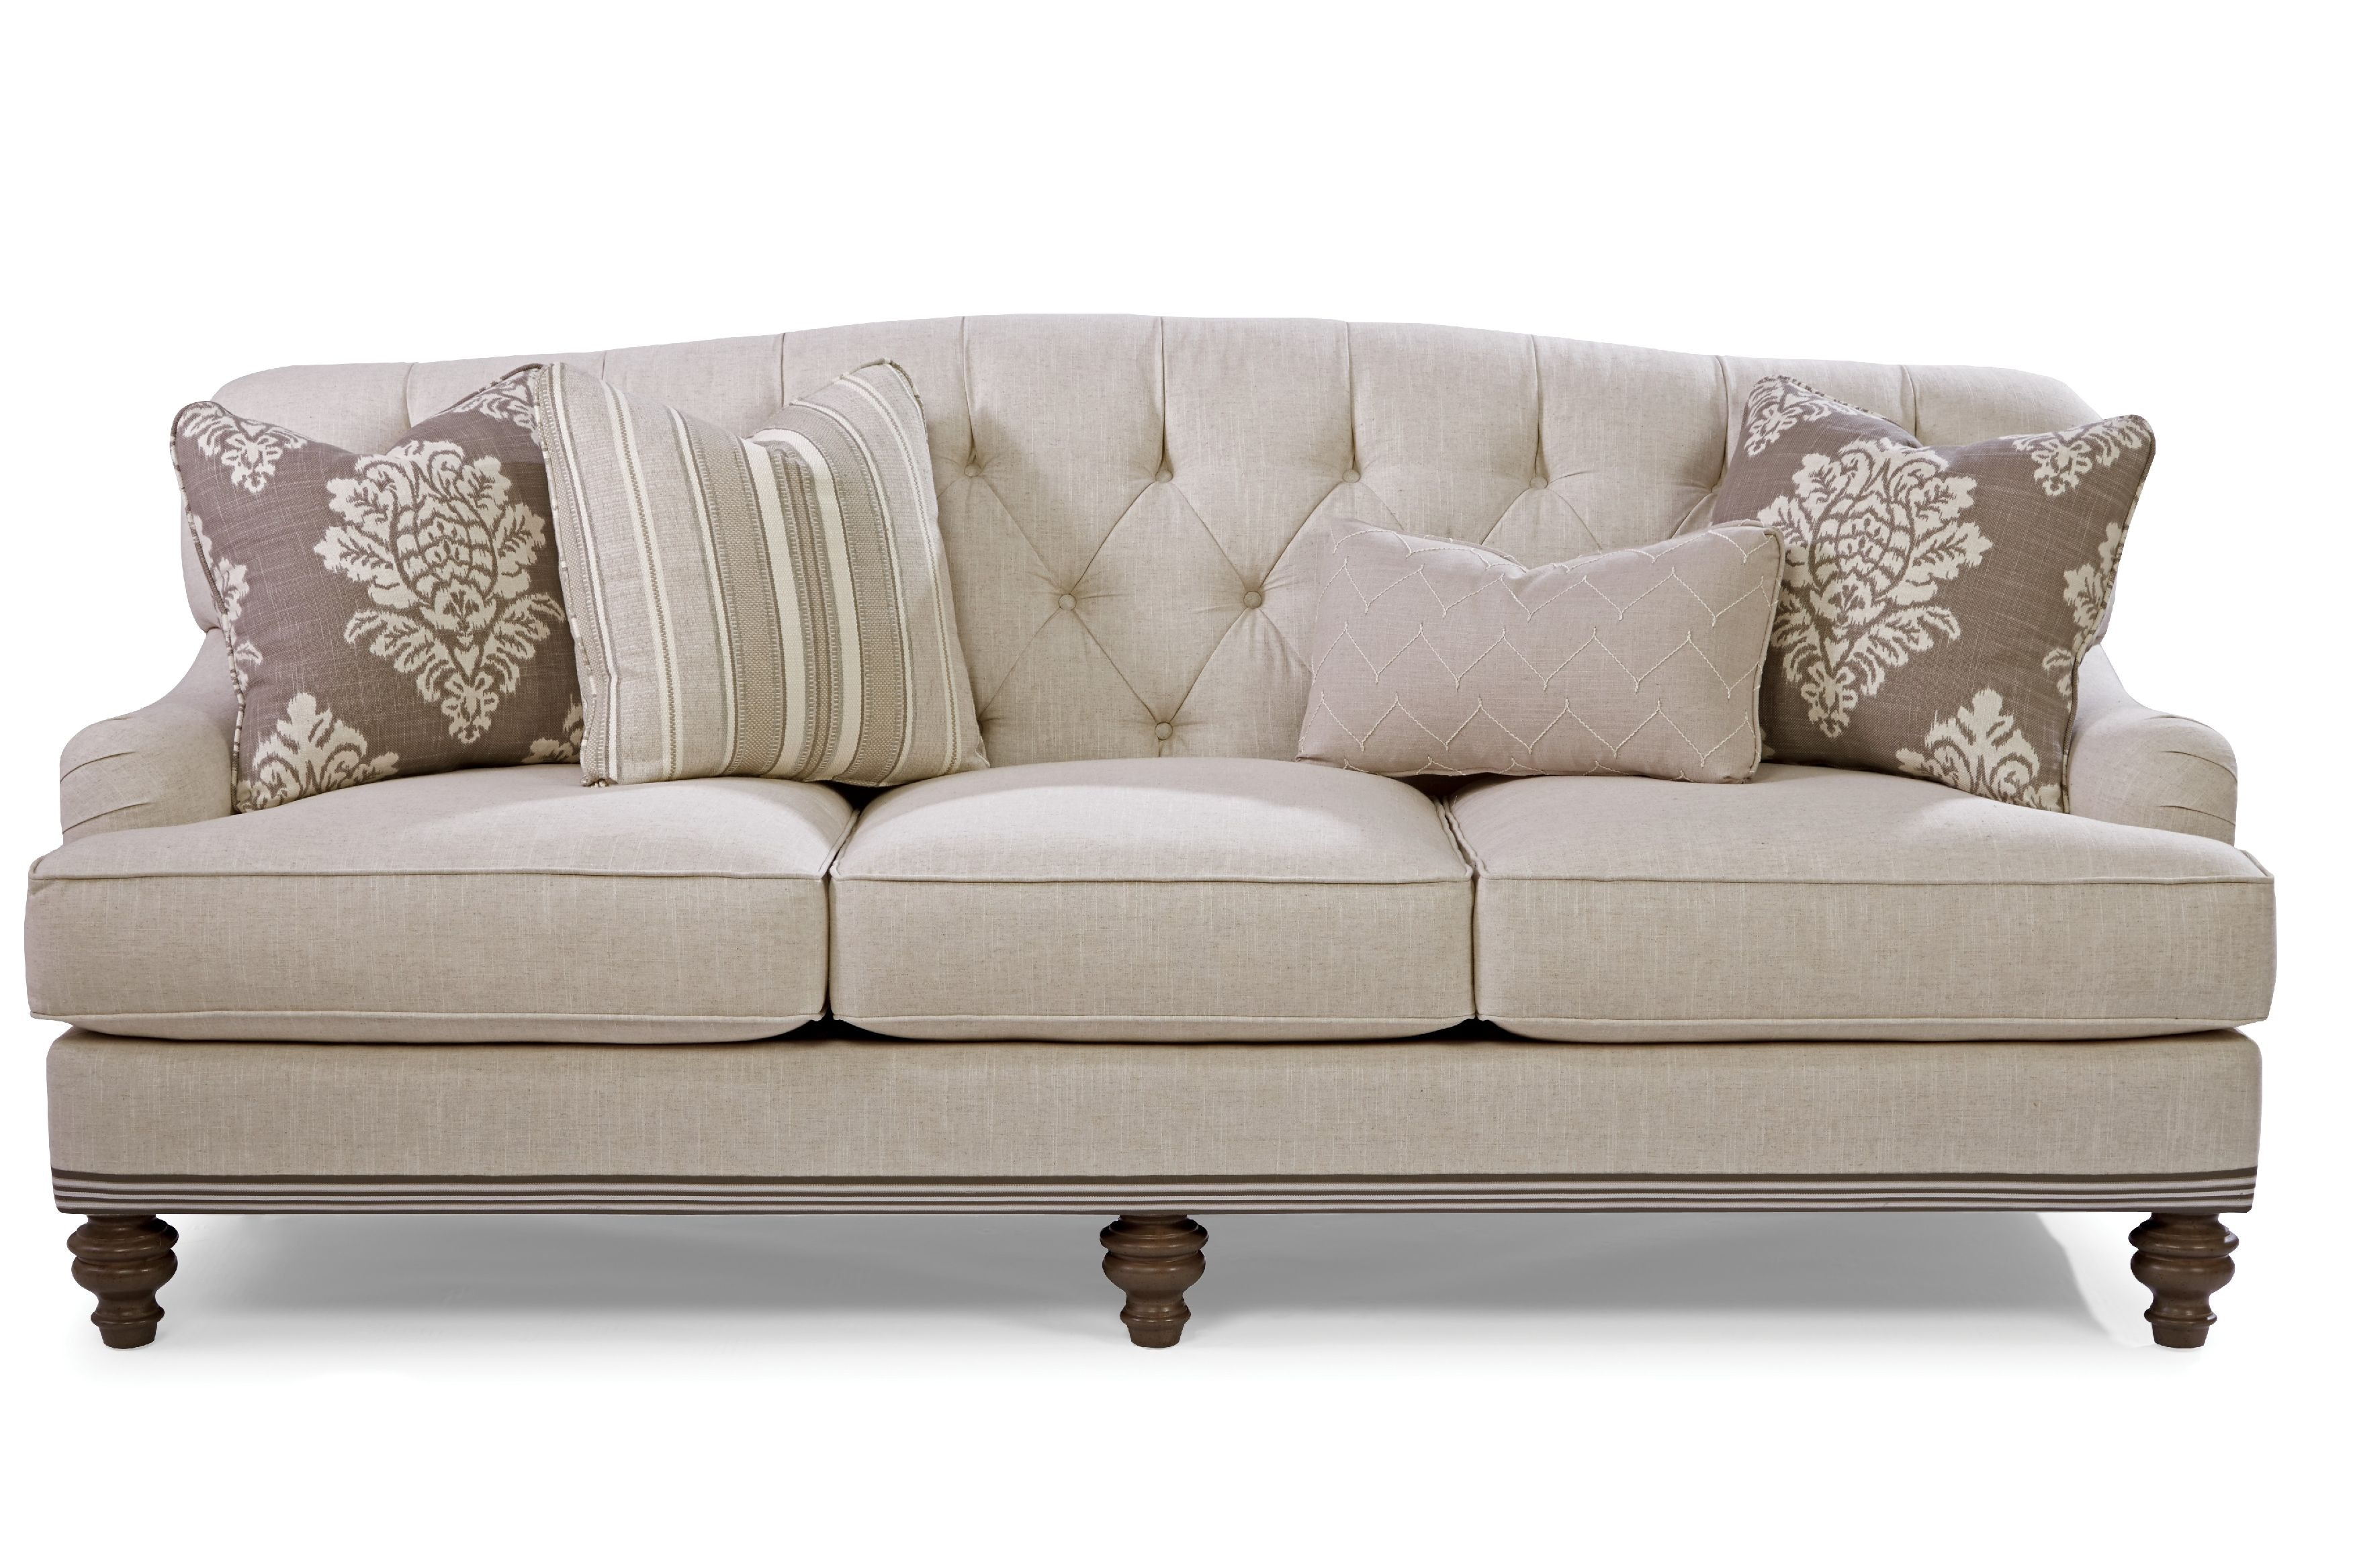 paula deen living room furniture collection cottage images dogwood sofa st 438485